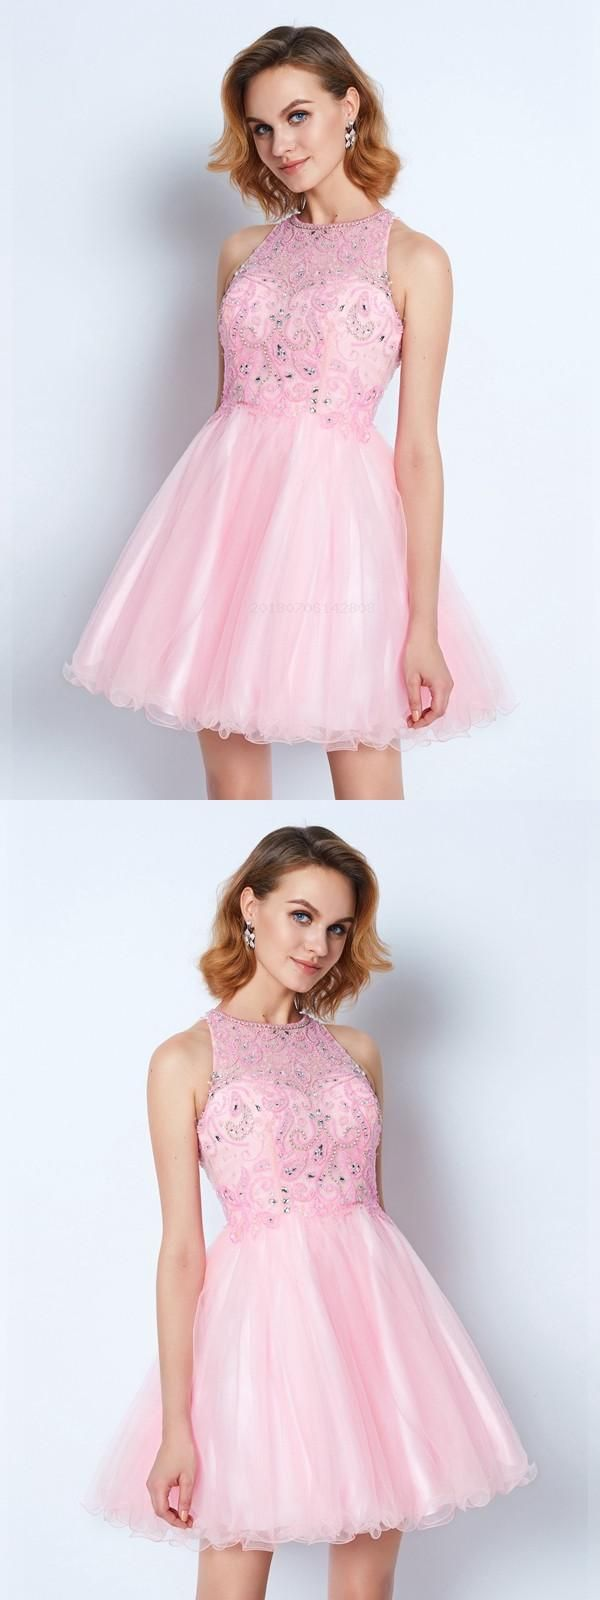 Custom made morden prom dress aline sleeveless homecoming dresses